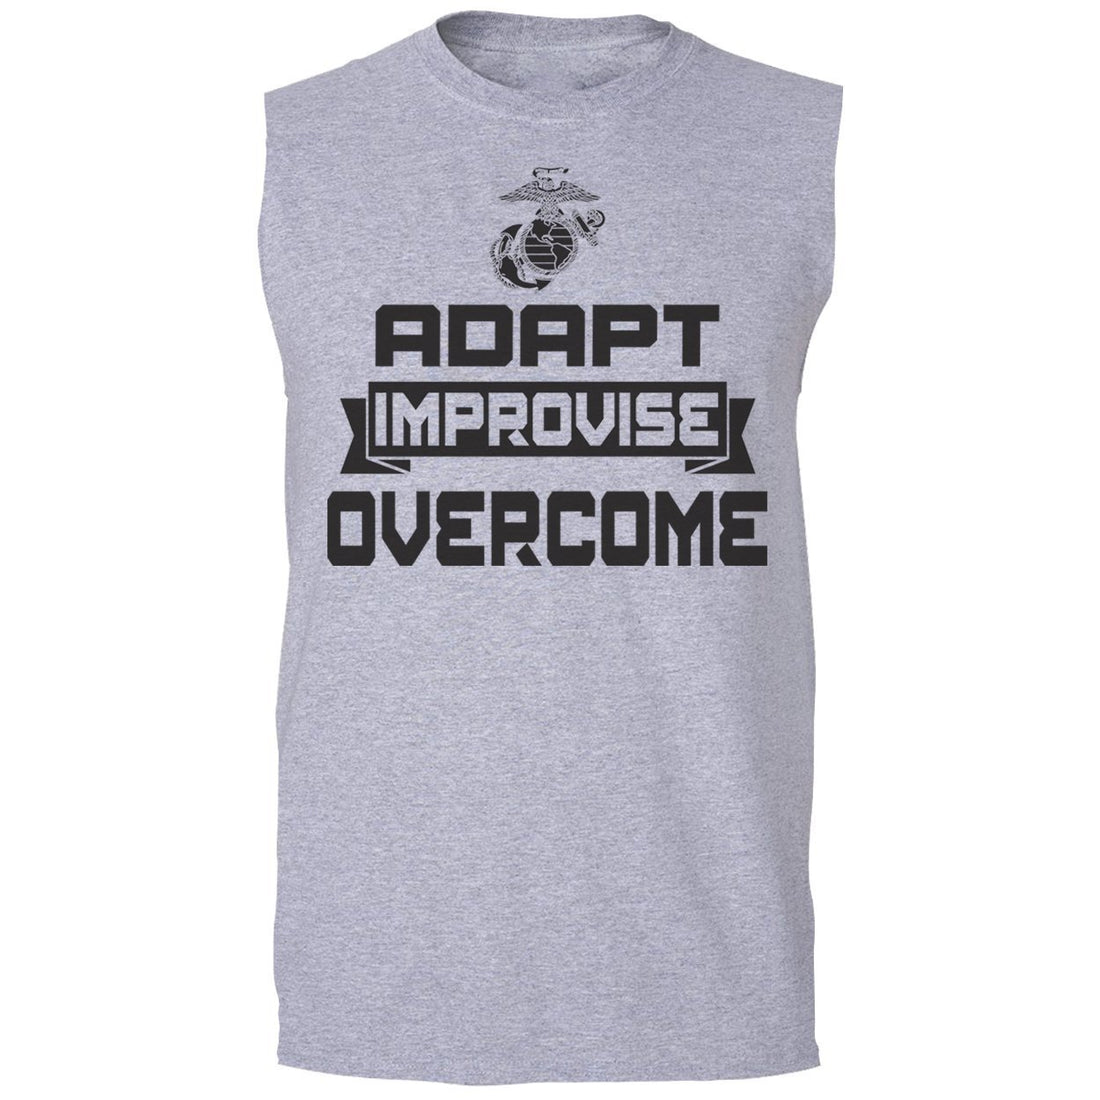 Sport gray sleeveless USMC clothing with Adapt, Improvise, Overcome on the front.